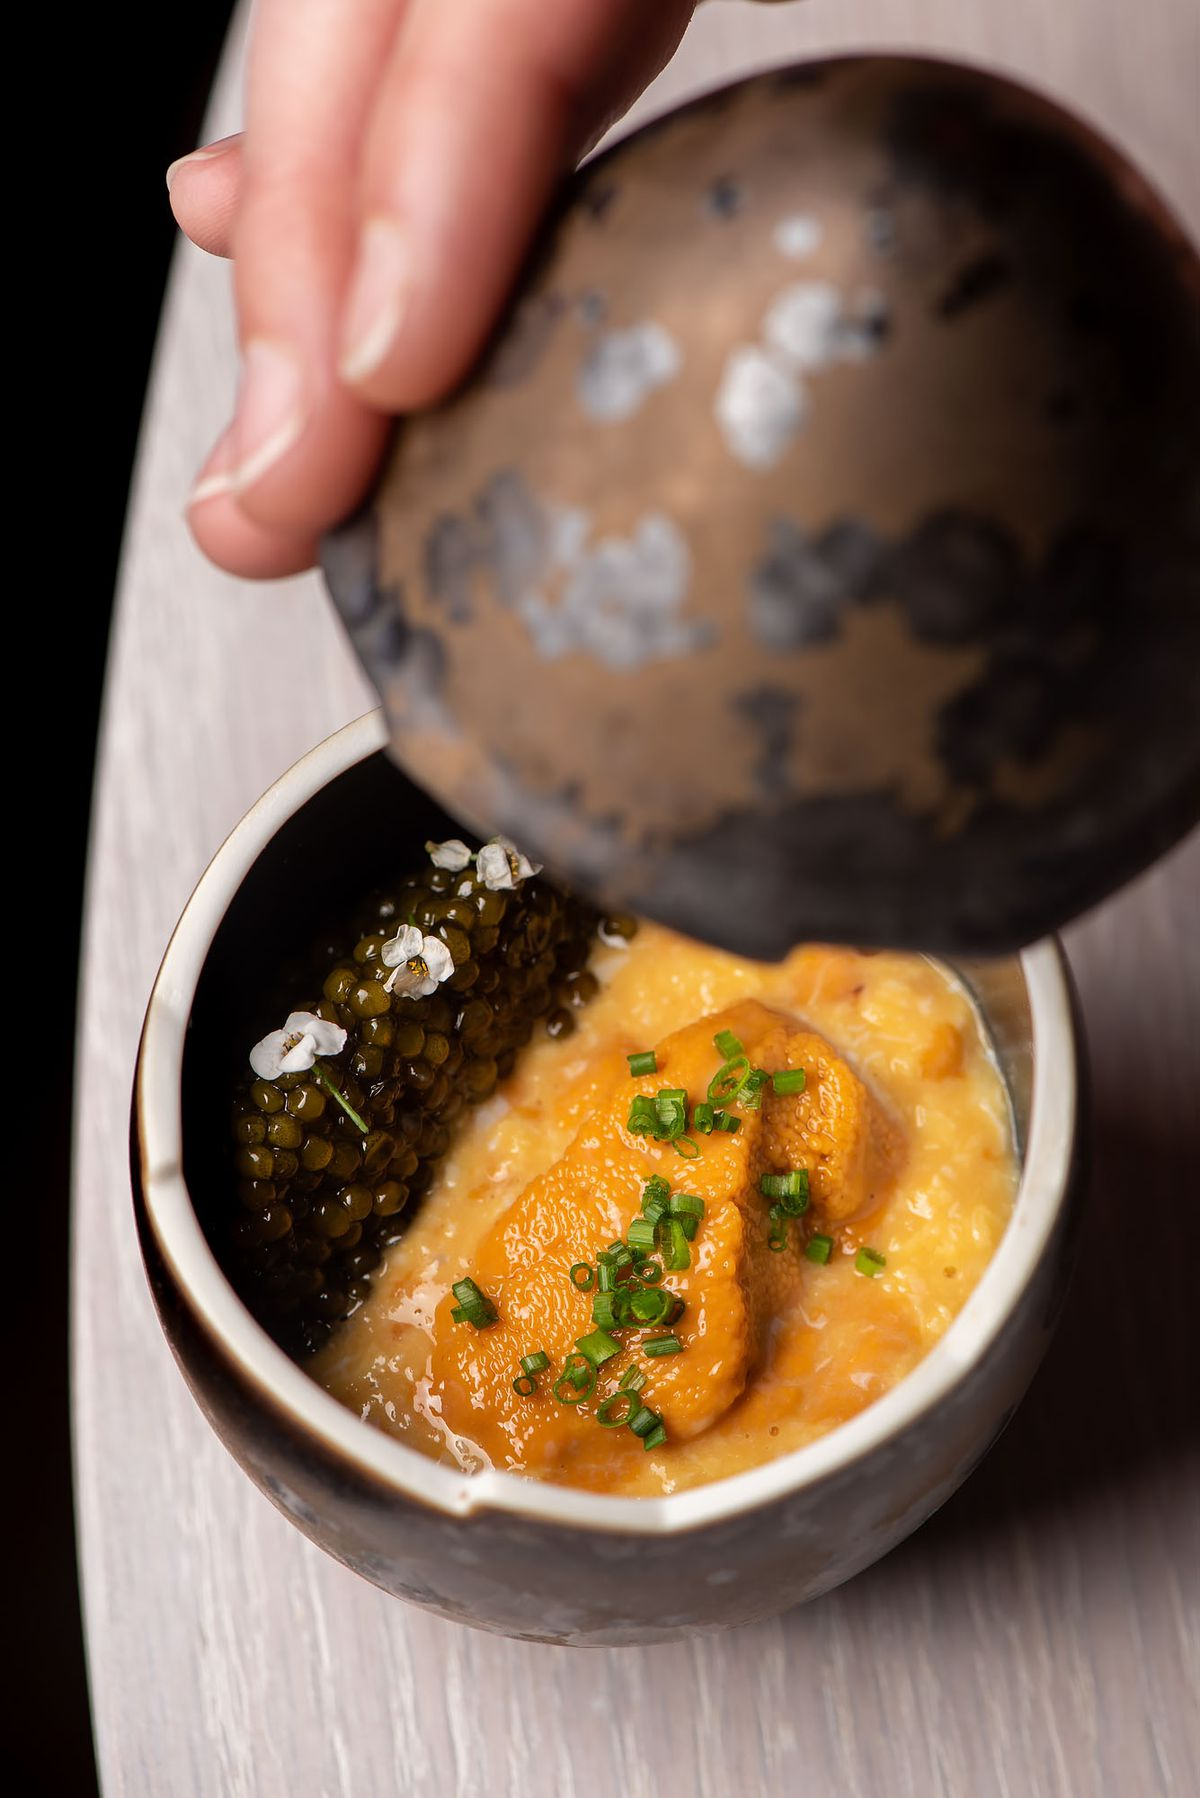 A fancy egg dish shows caviar, eggs, and uni.